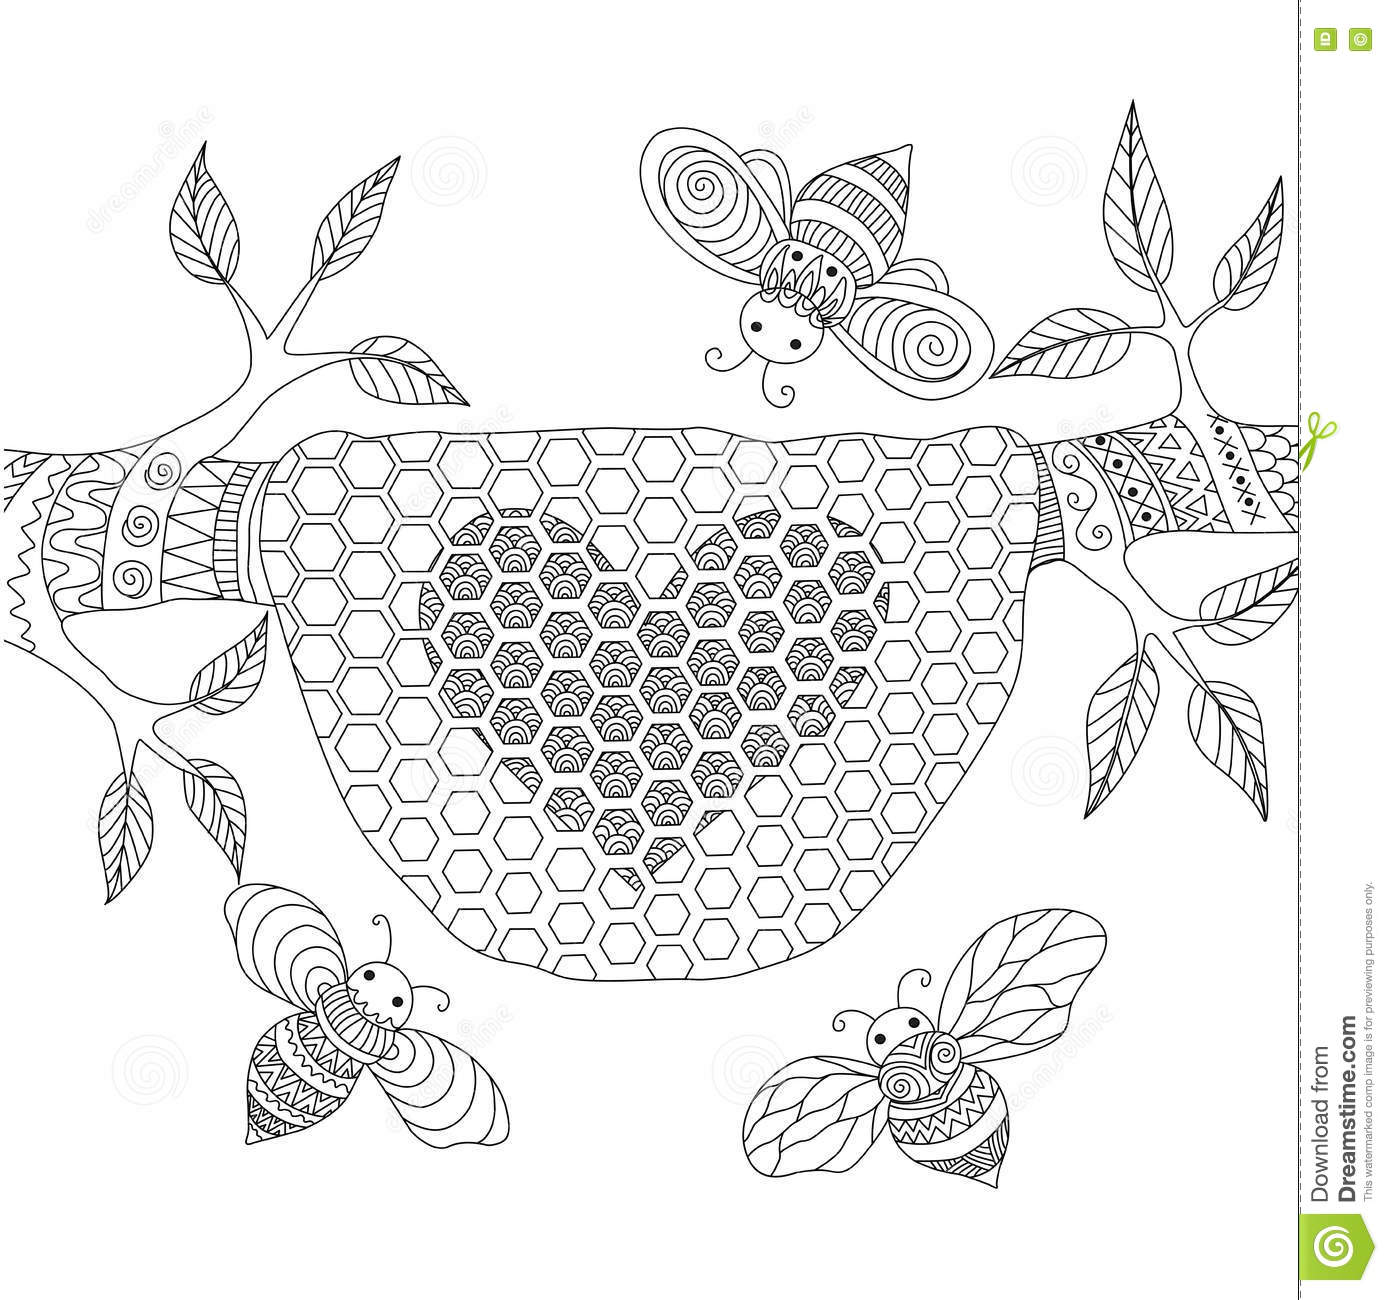 Wedding Card Line Art Designs : Line art design of honey bees flying around beehive stock